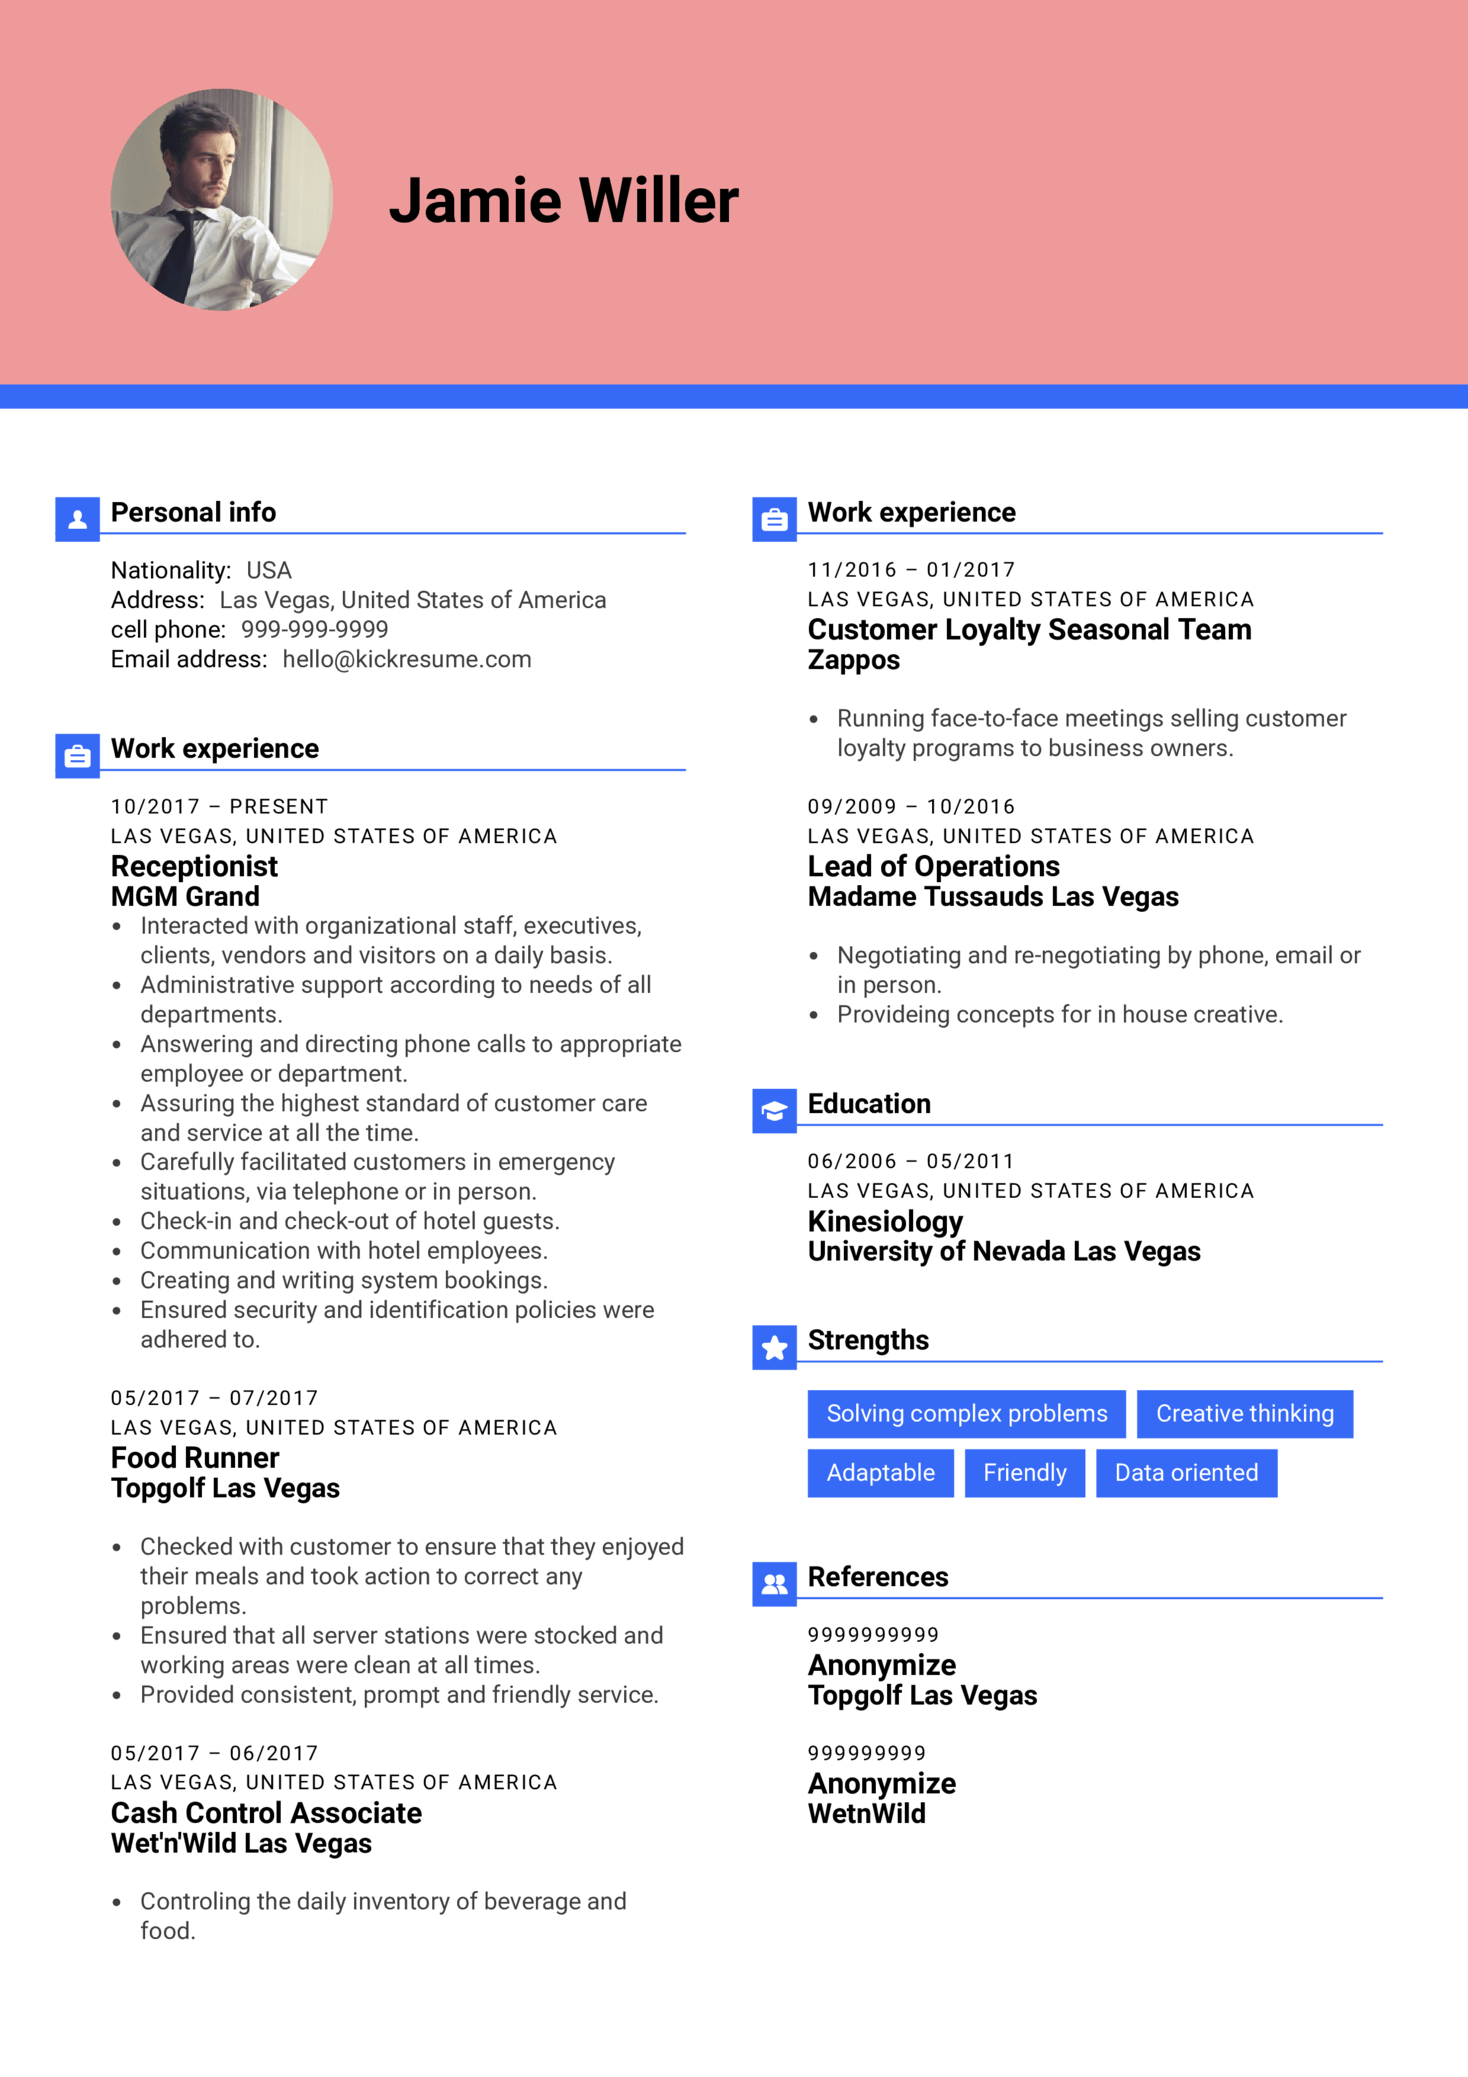 Resume Examples by Real People: Receptionist resume template at MGM ...